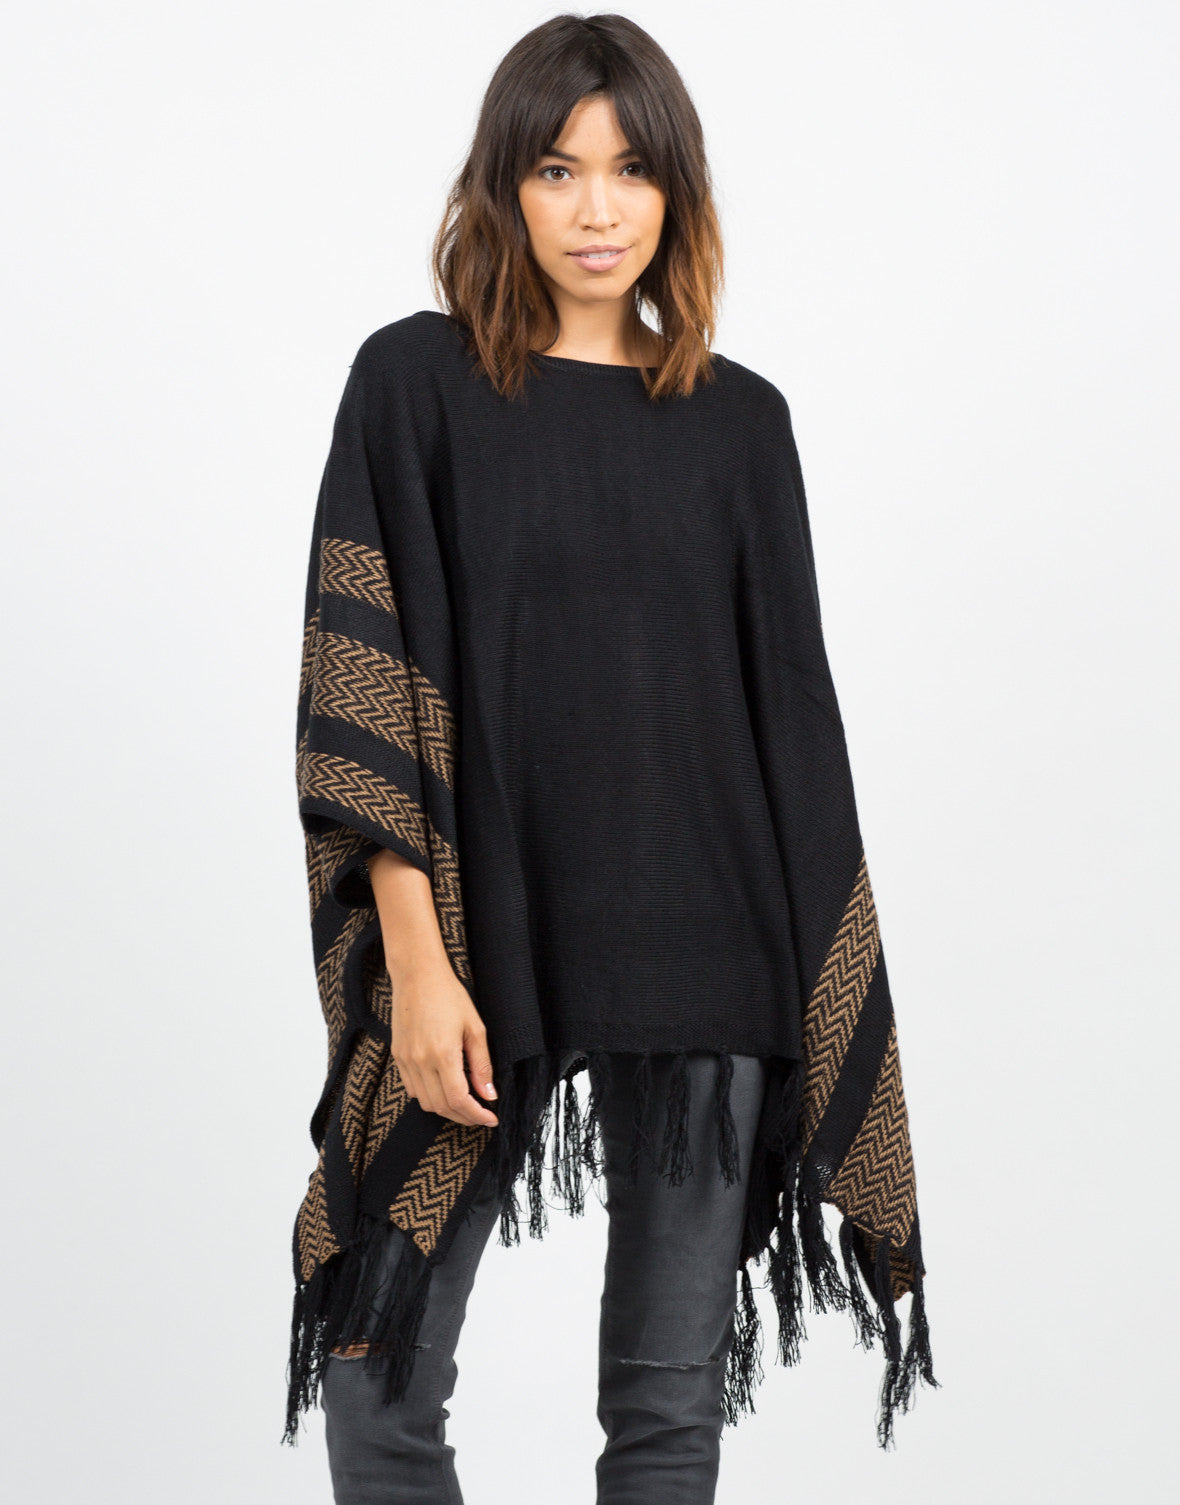 Front View of Aztec Poncho Sweater Top